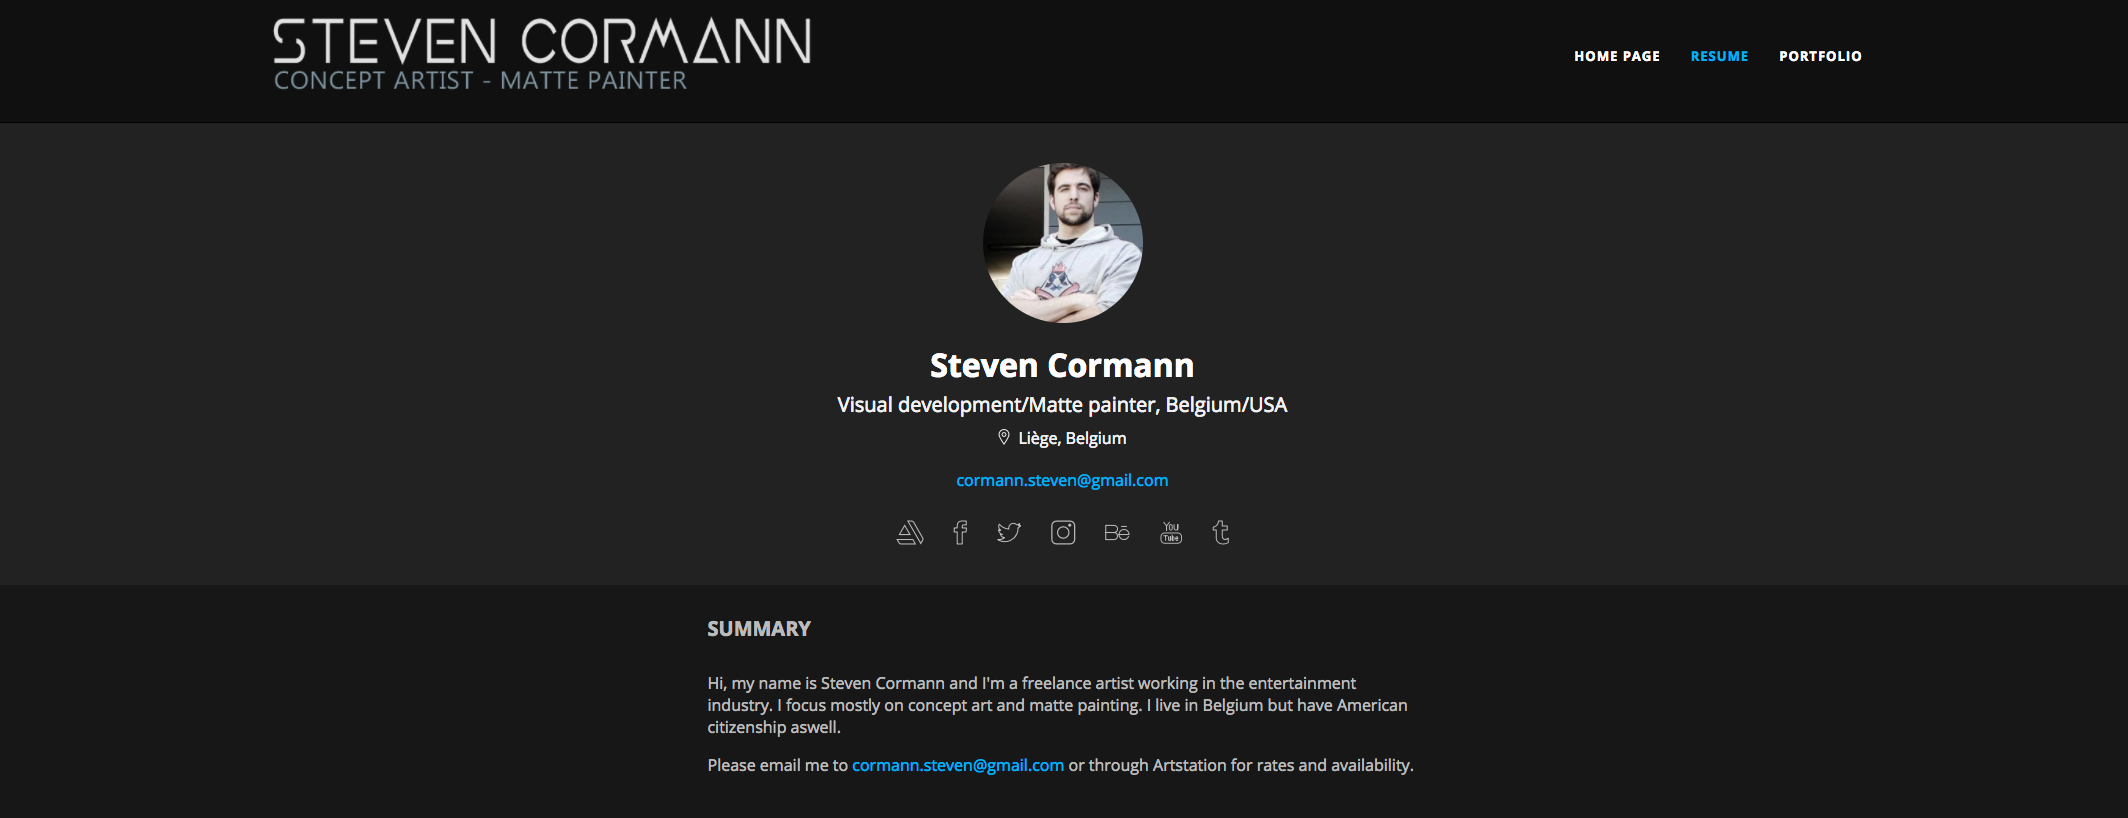 Featured Pro Portfolio: Steven Cormann